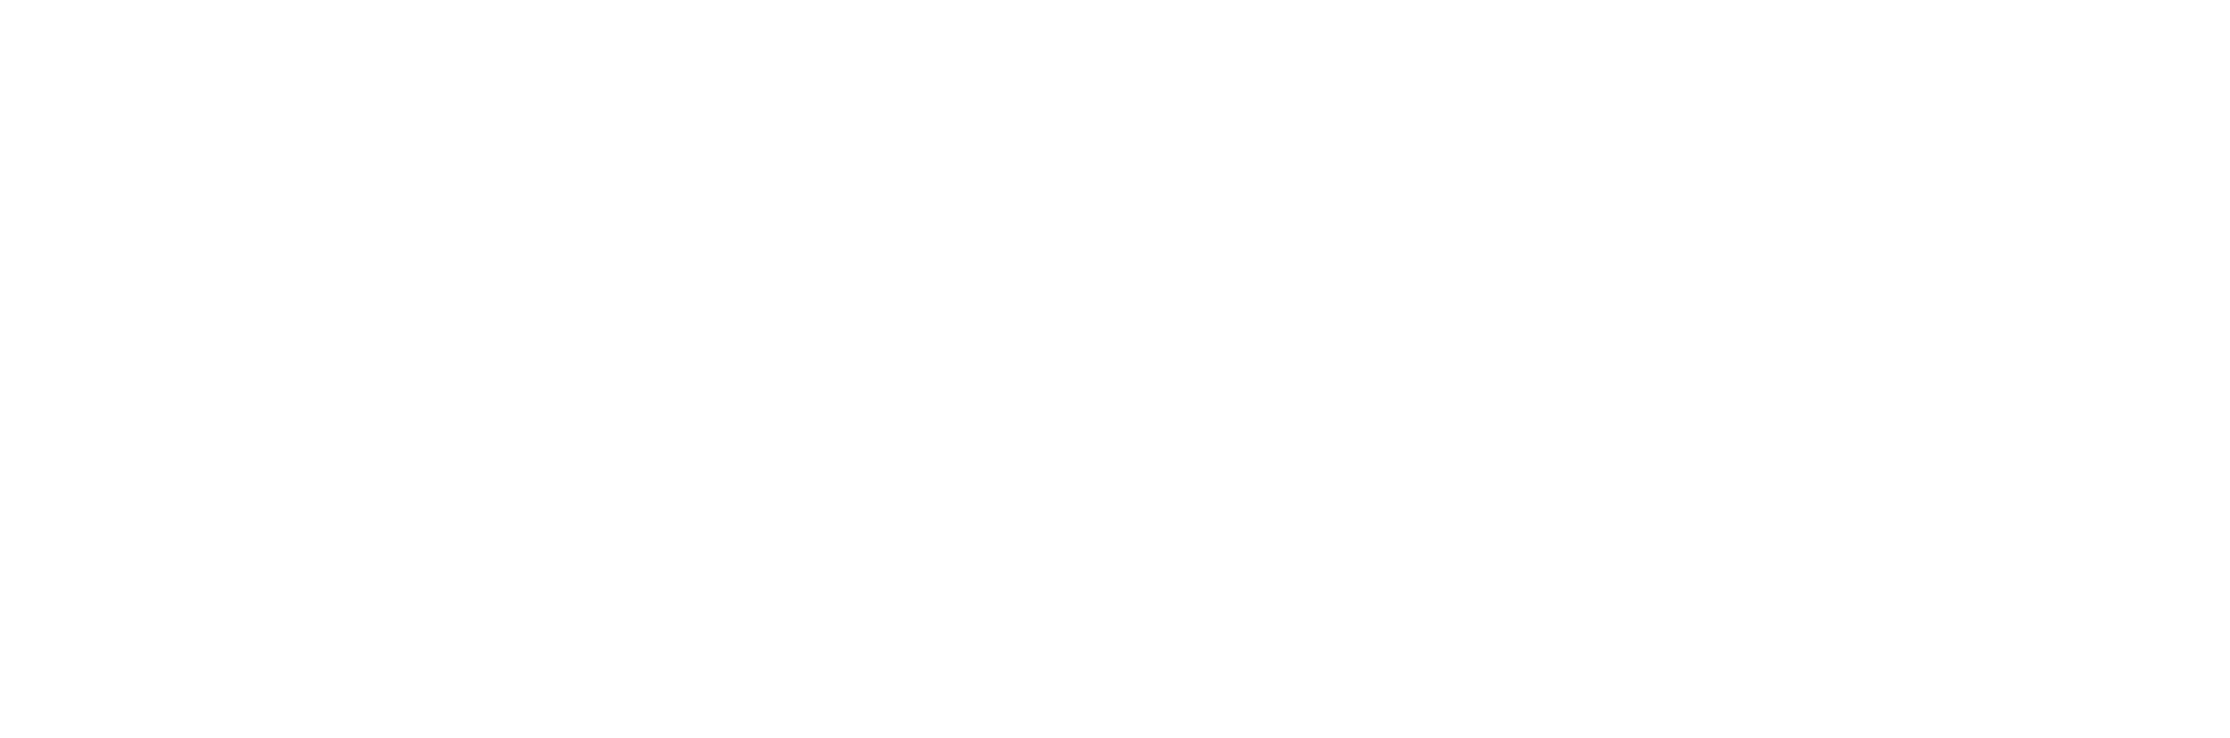 Office for Ageing Well